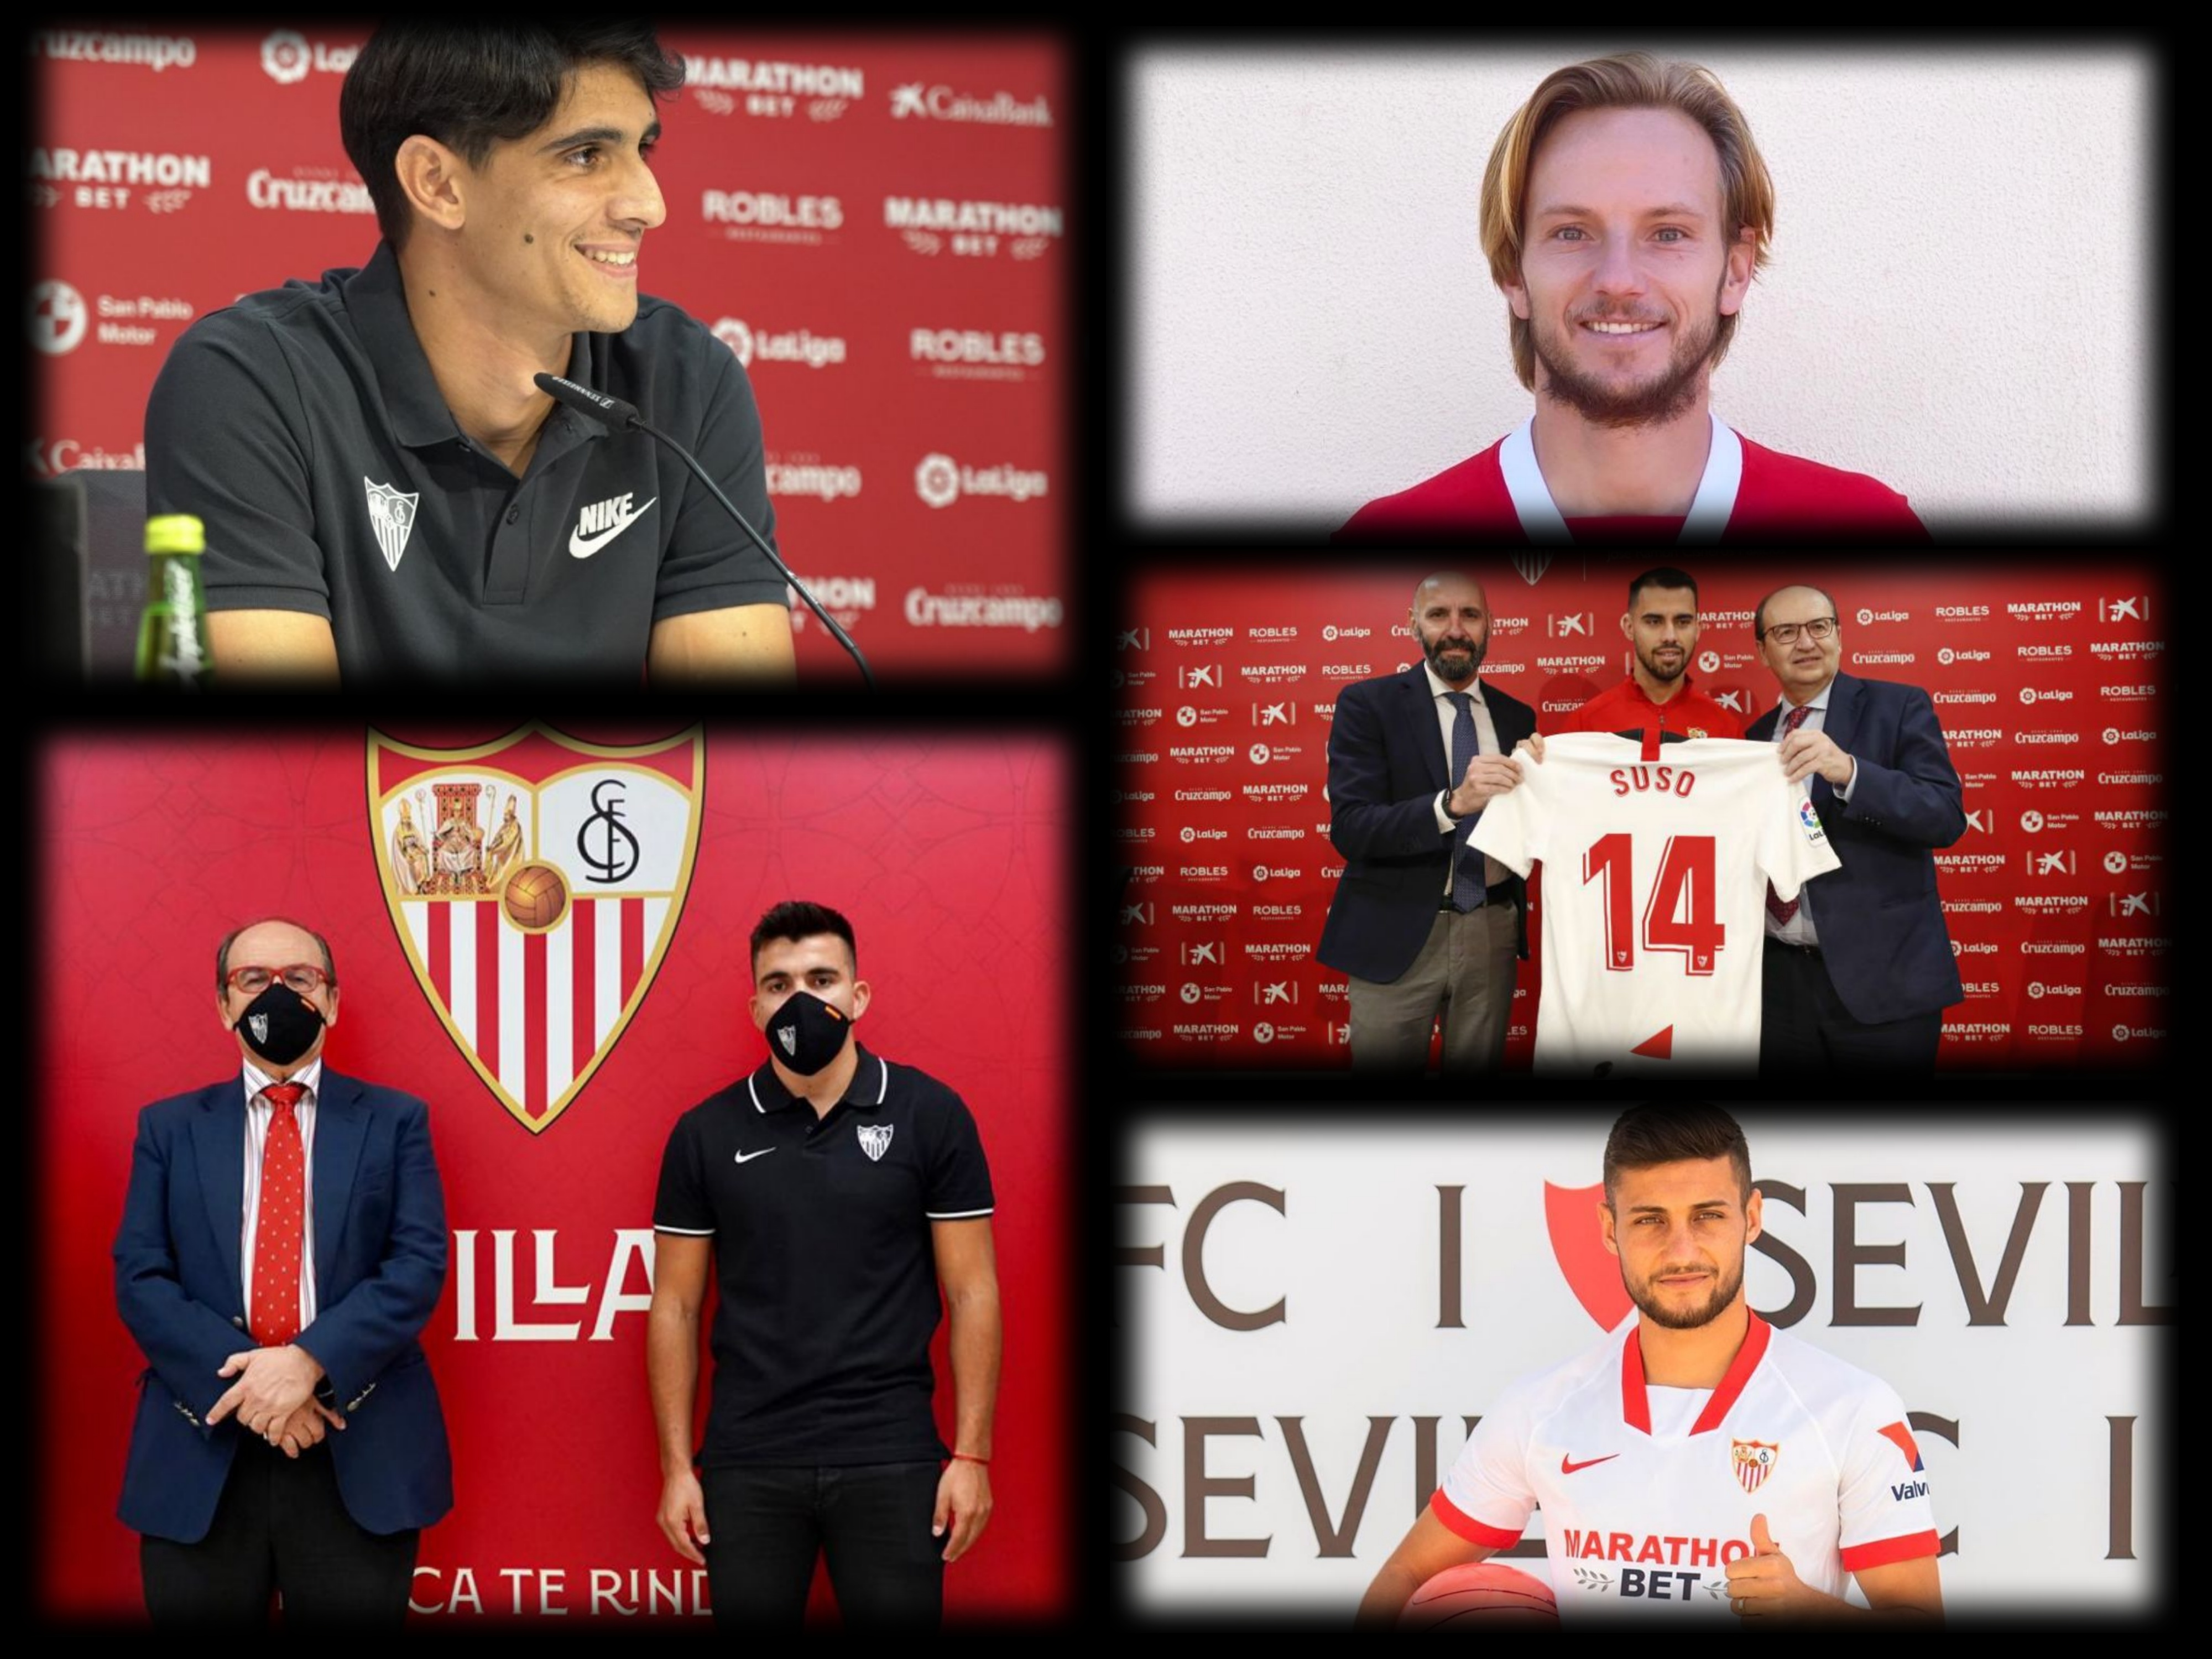 Last season it was 12, this summer Sevilla got its fifth signing